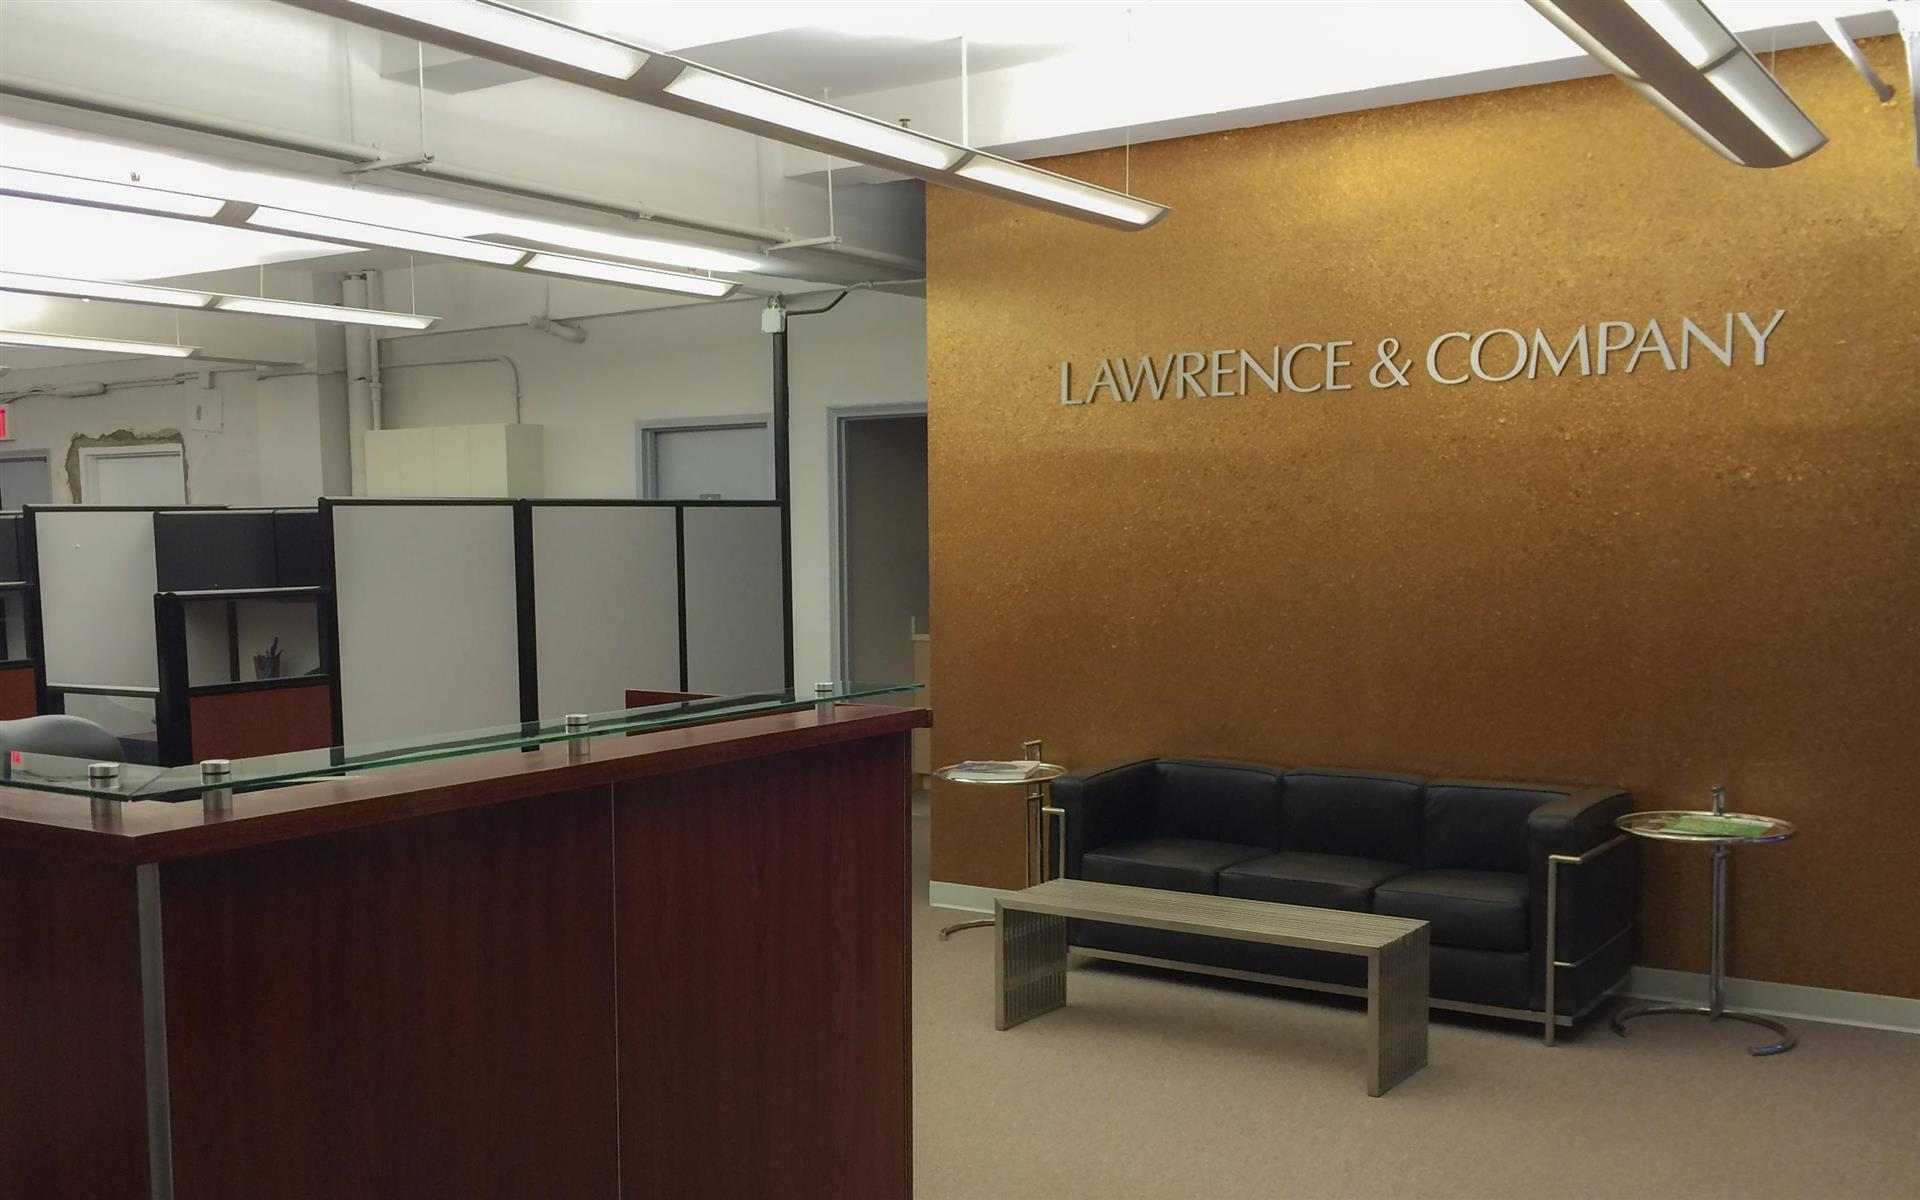 212 West 35th - 212 W 35th St, NYC - Office Suite for 16